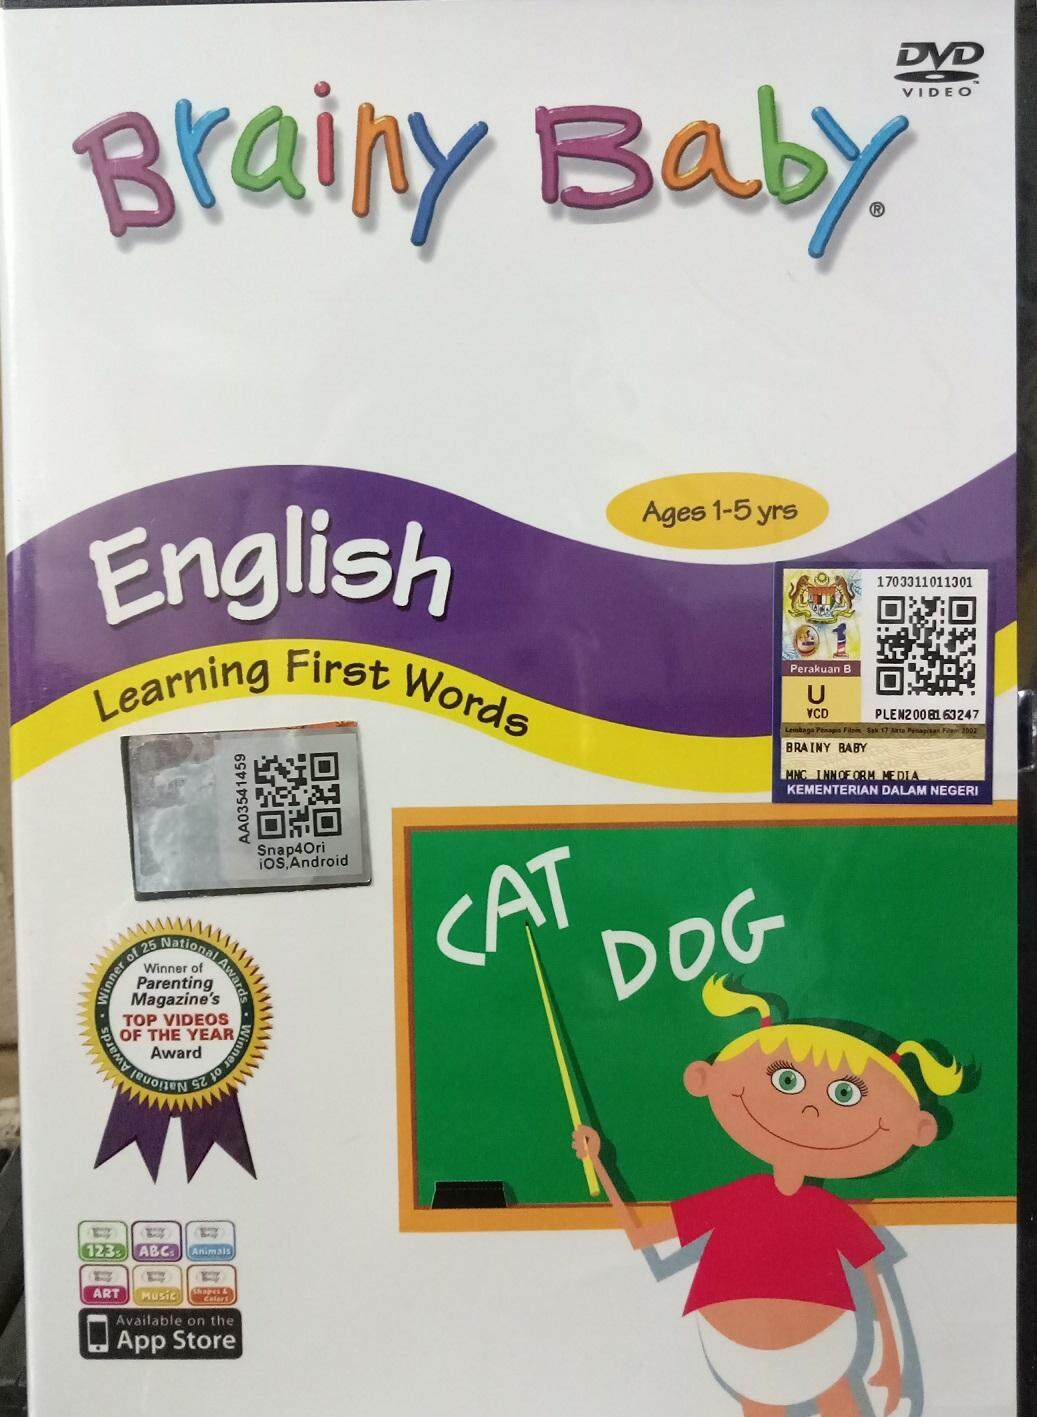 Brainy Baby English Learning First Words Ages 1-5 Yrs Dvd By Discplayer.